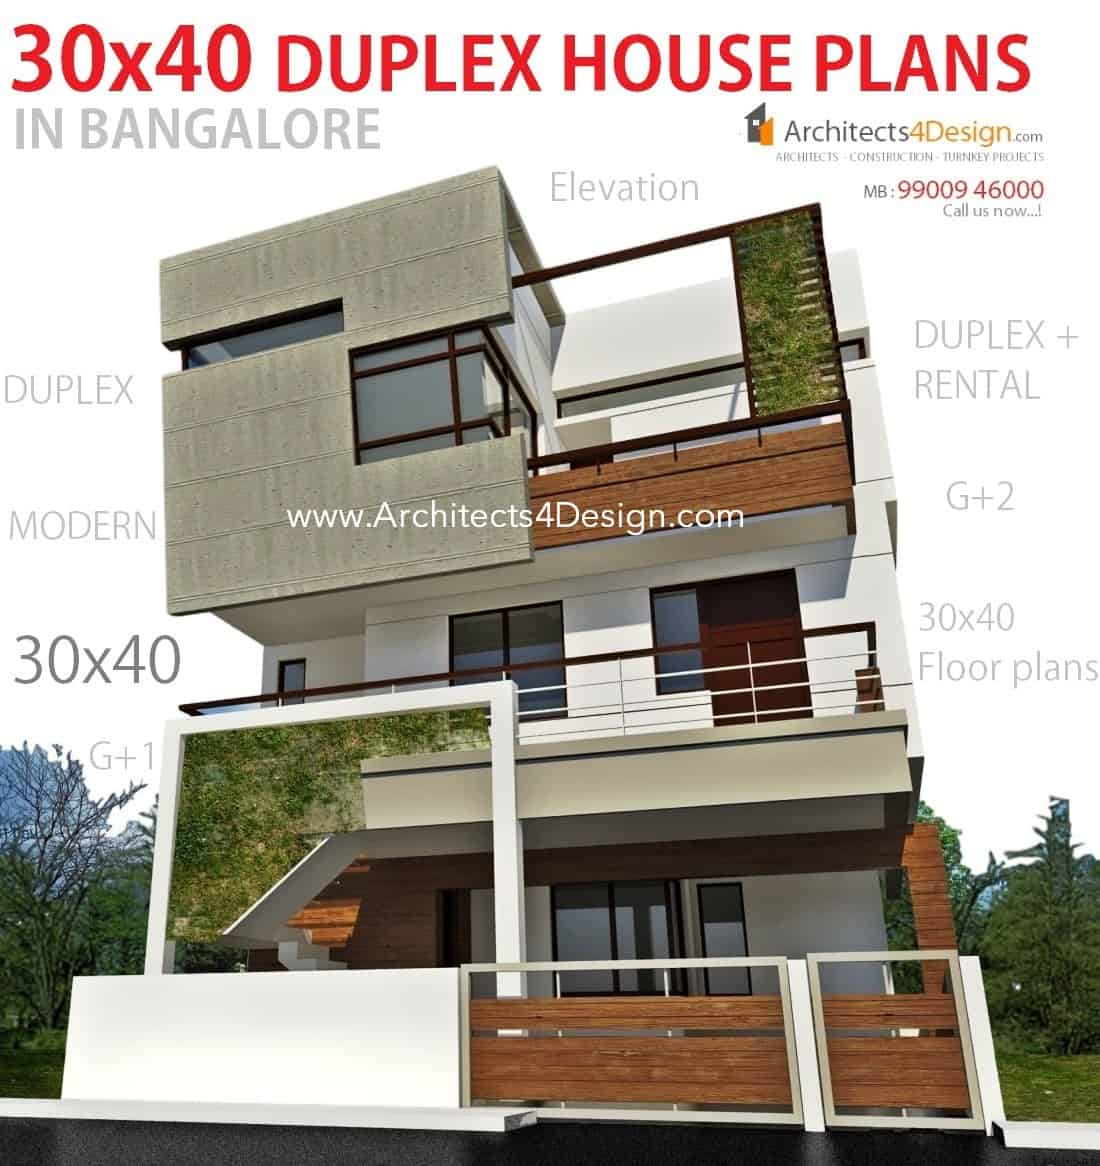 30x40 house plans in bangalore for g 1 g 2 g 3 g 4 floors for Design duplex house architecture india